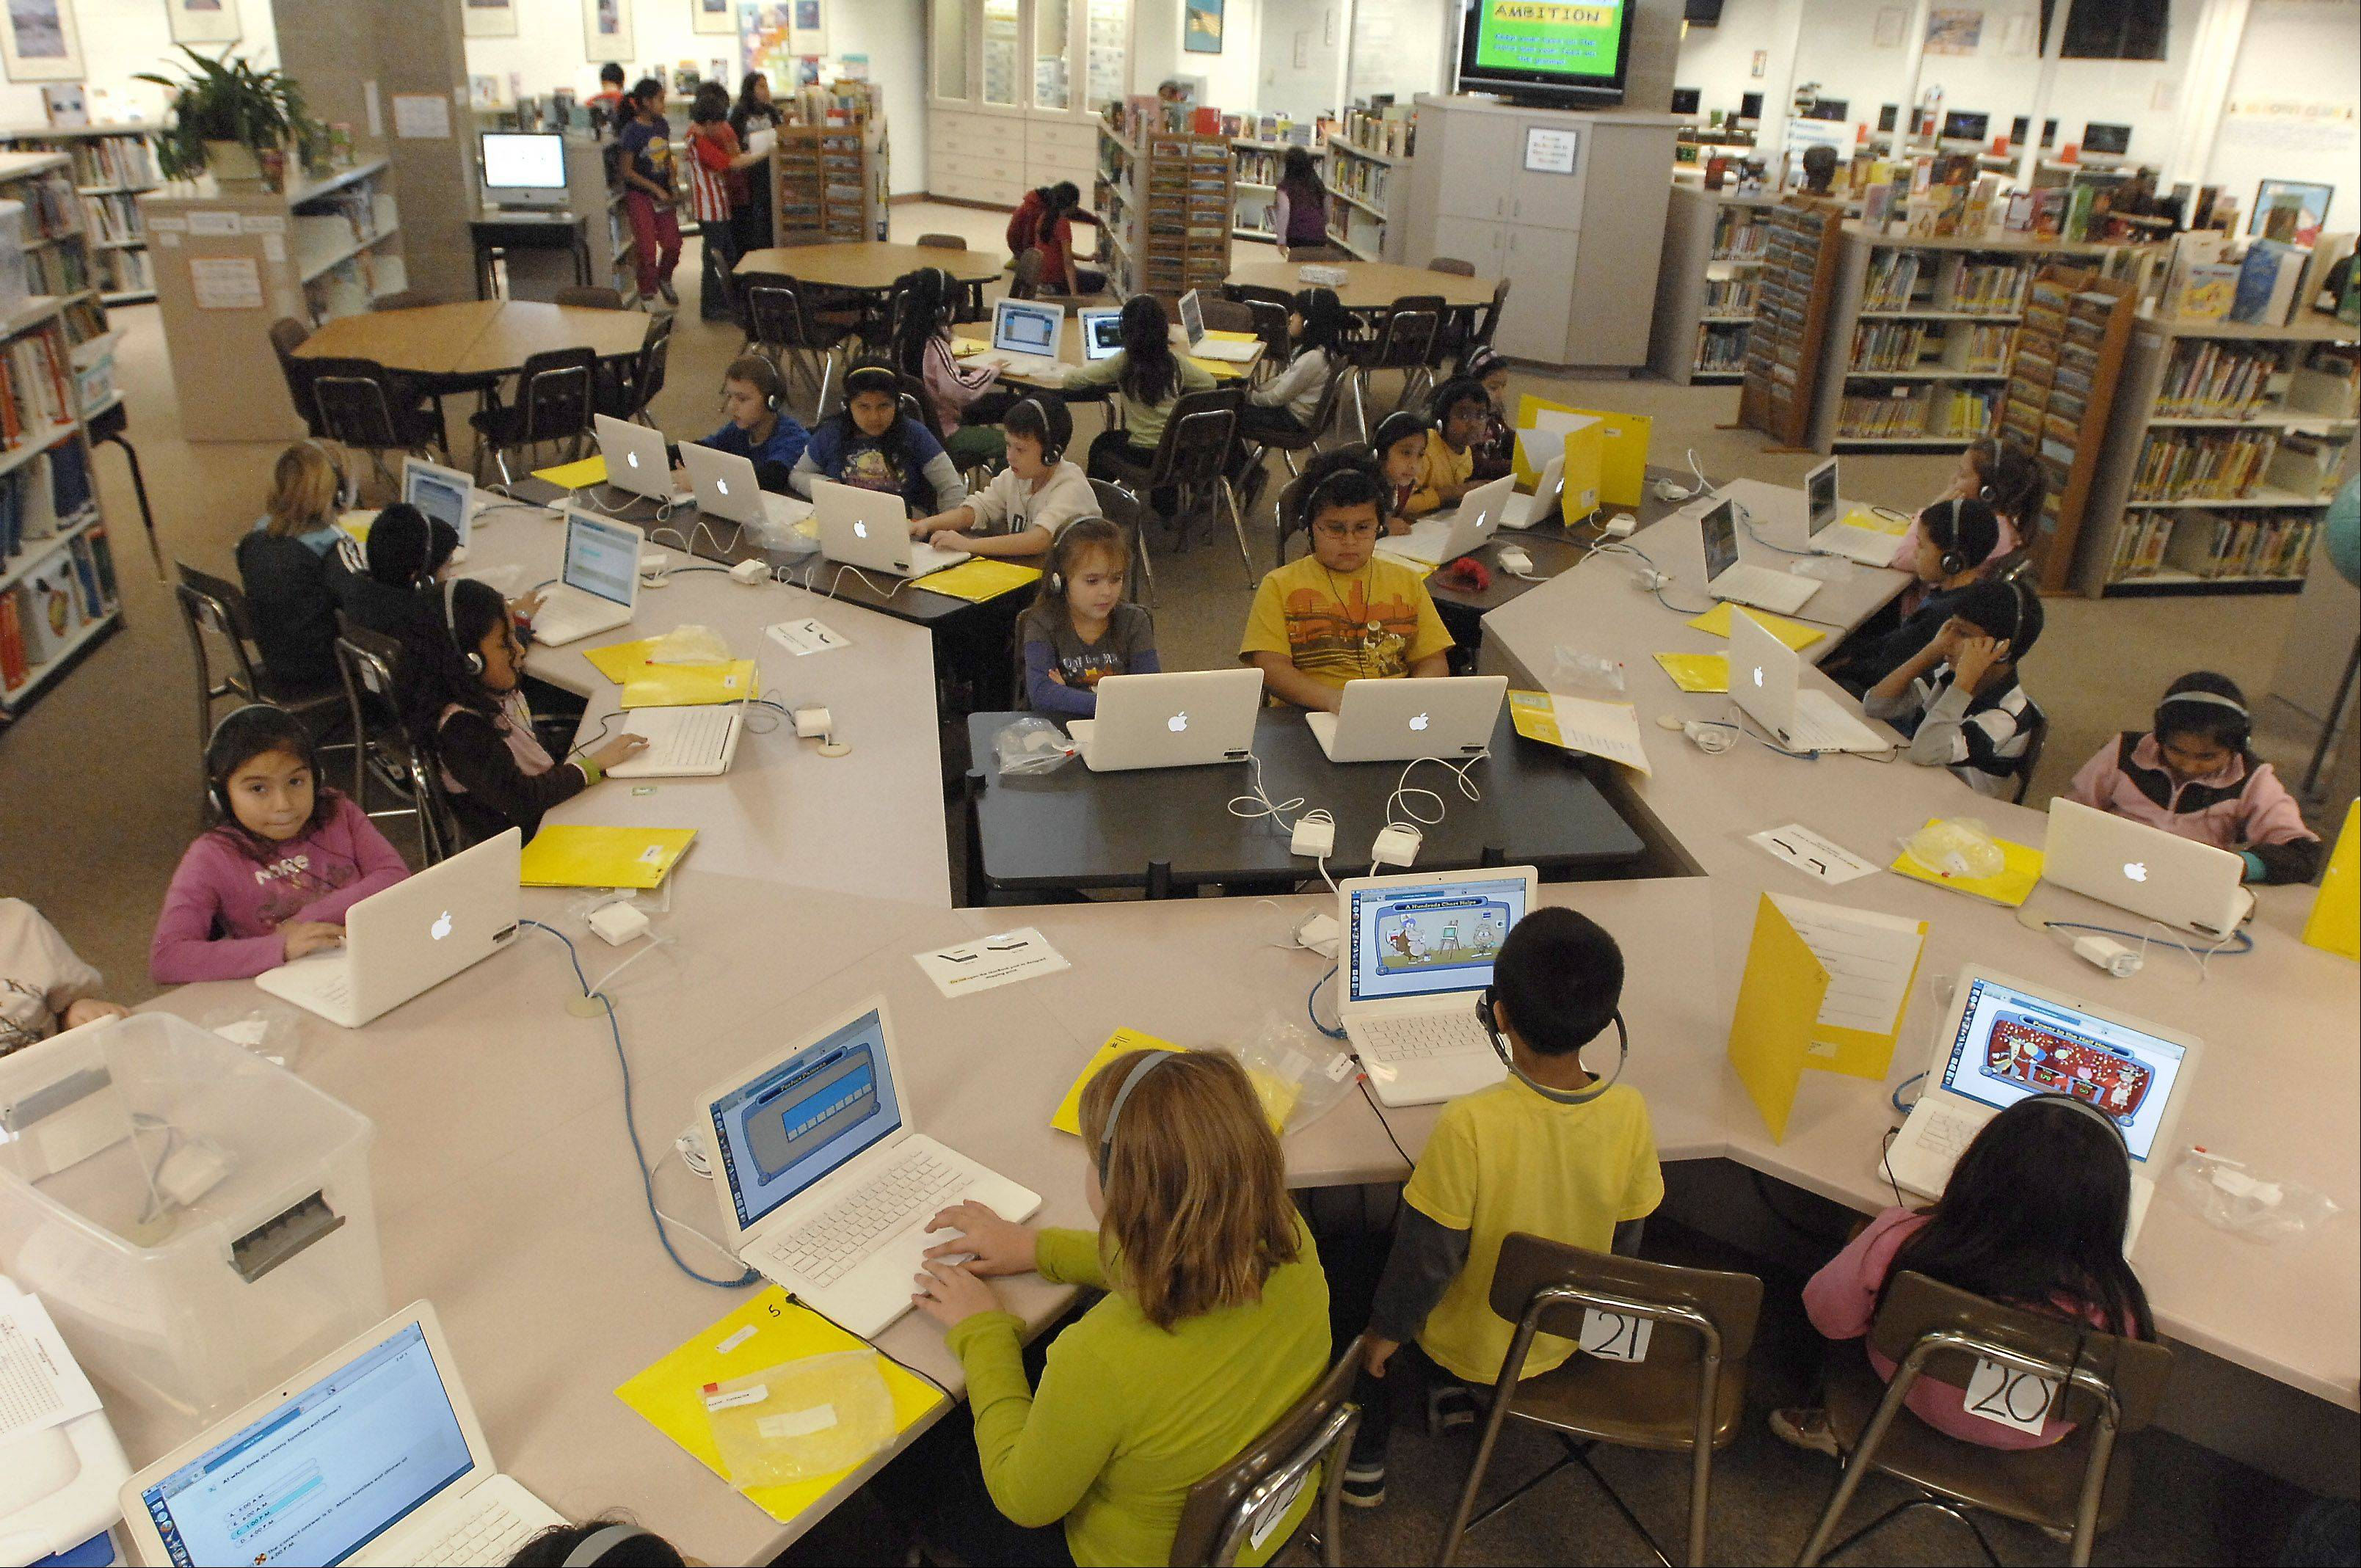 Desks and tables have been added to the learning resource center to accommodate more students at Robert Frost Elementary School in Mount Prospect. An unexpected rise in enrollment has led to overcrowding at the school.